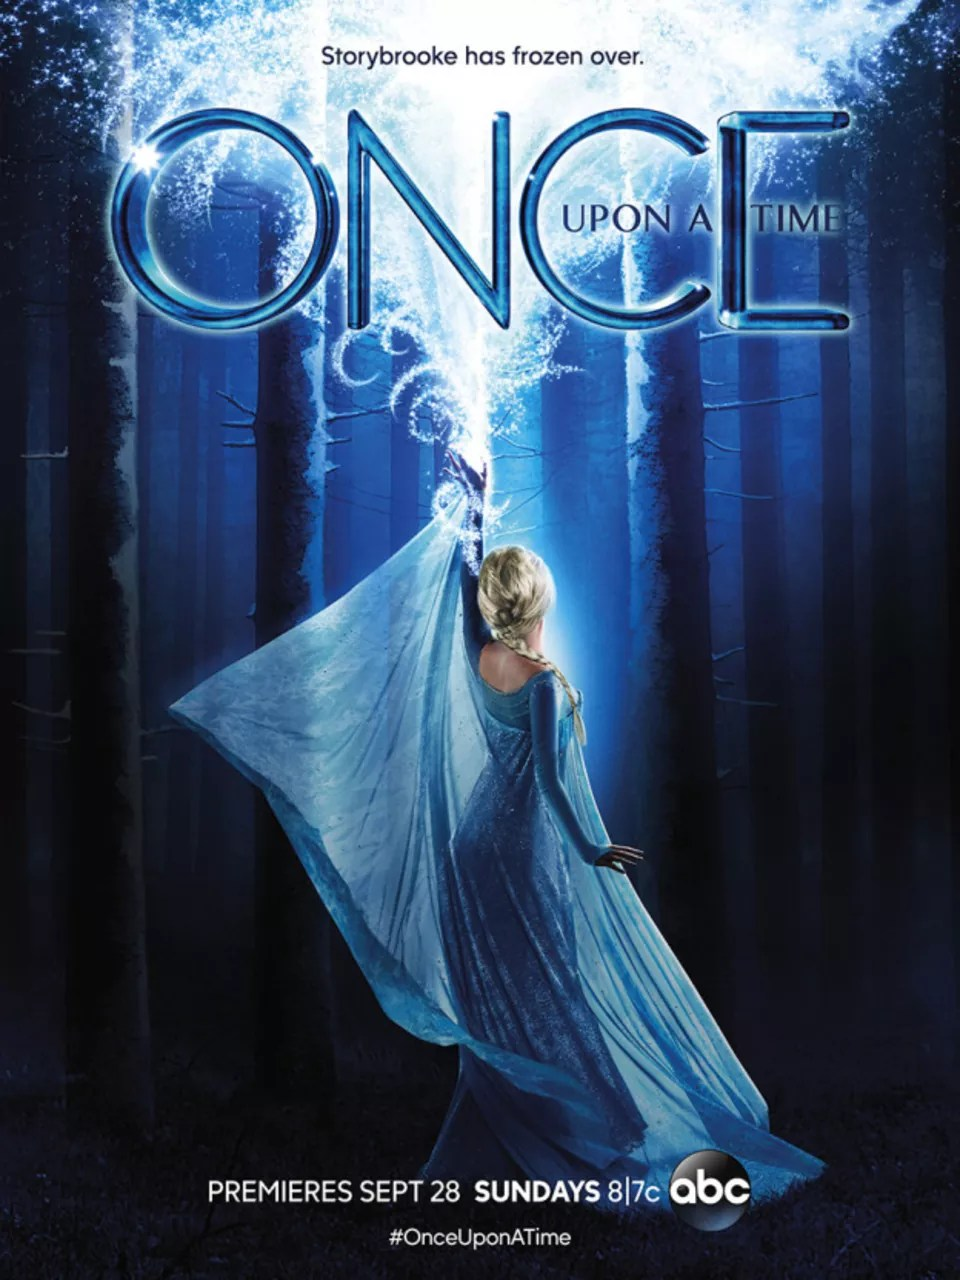 Once Upon A Time Elsa : FROZEMBER], Remembering, Frozen, Season, ABC's, 'Once, Time', Rotoscopers